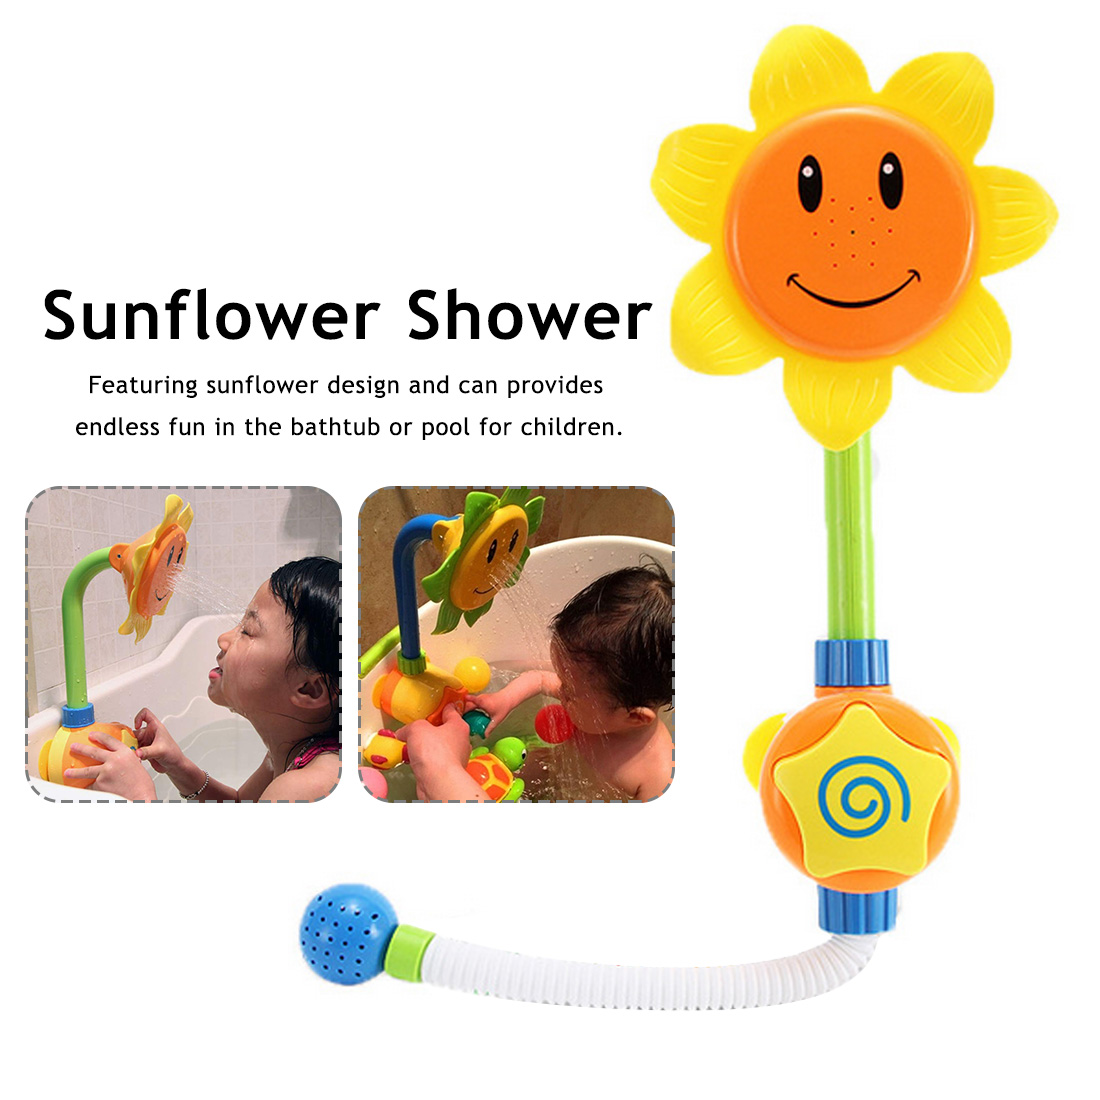 Bathing Tub Sunflower Shower Faucet Spray Water Swimming Bathroom Bath Toys For Children Baby Funny Water Game Bath Toy image